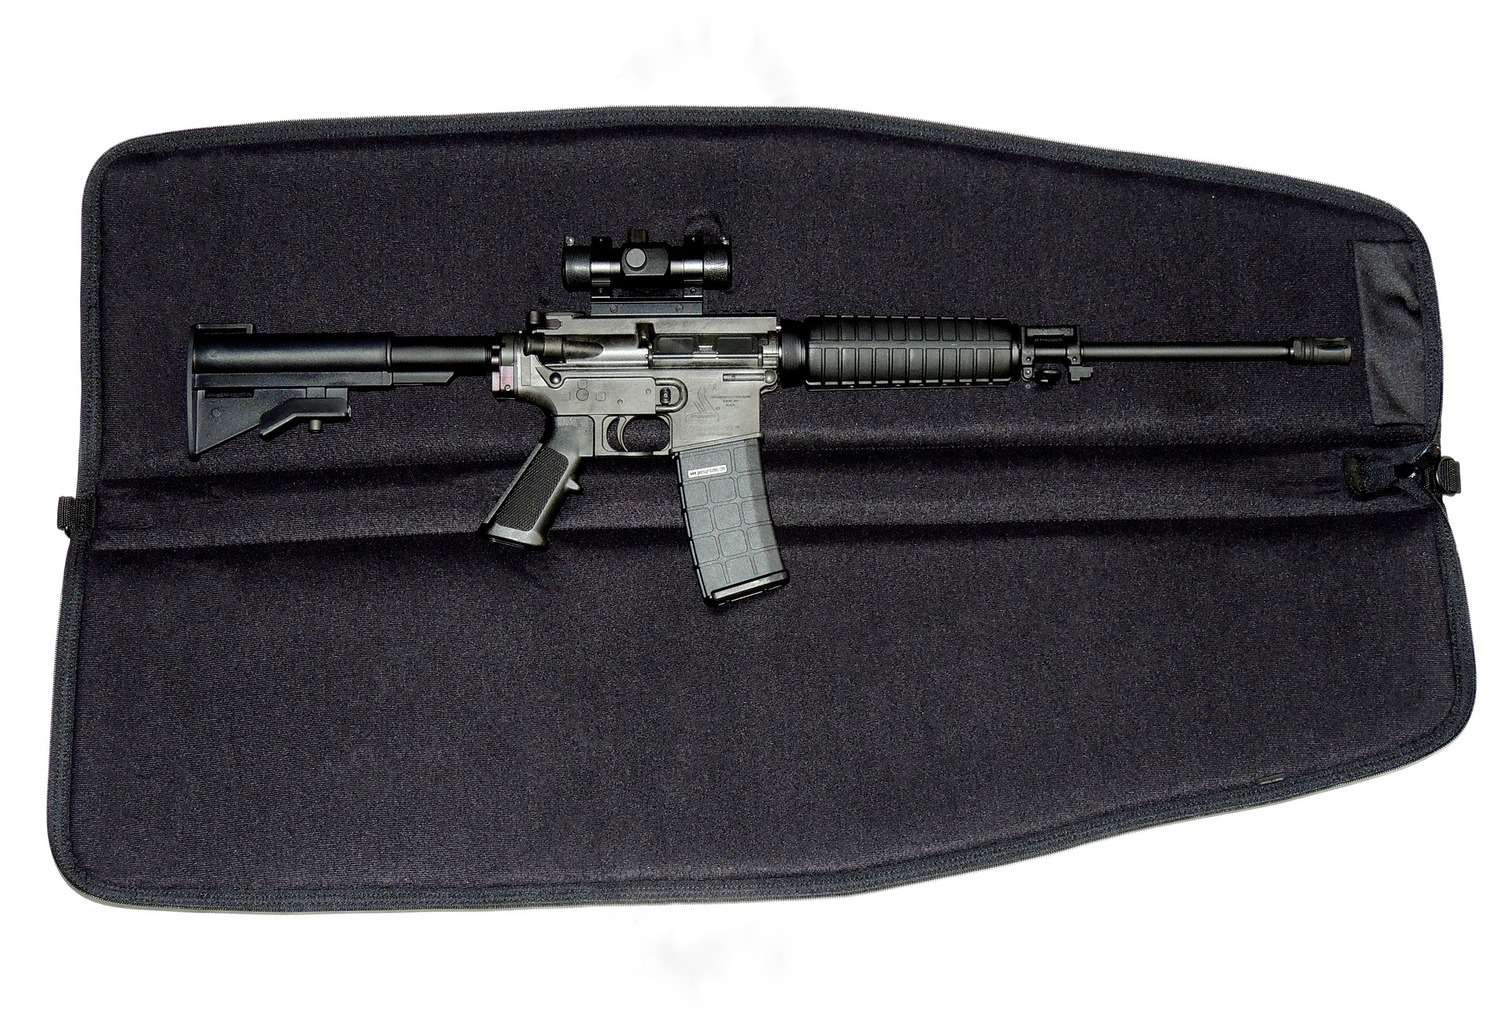 Best gun case size for an AR 15